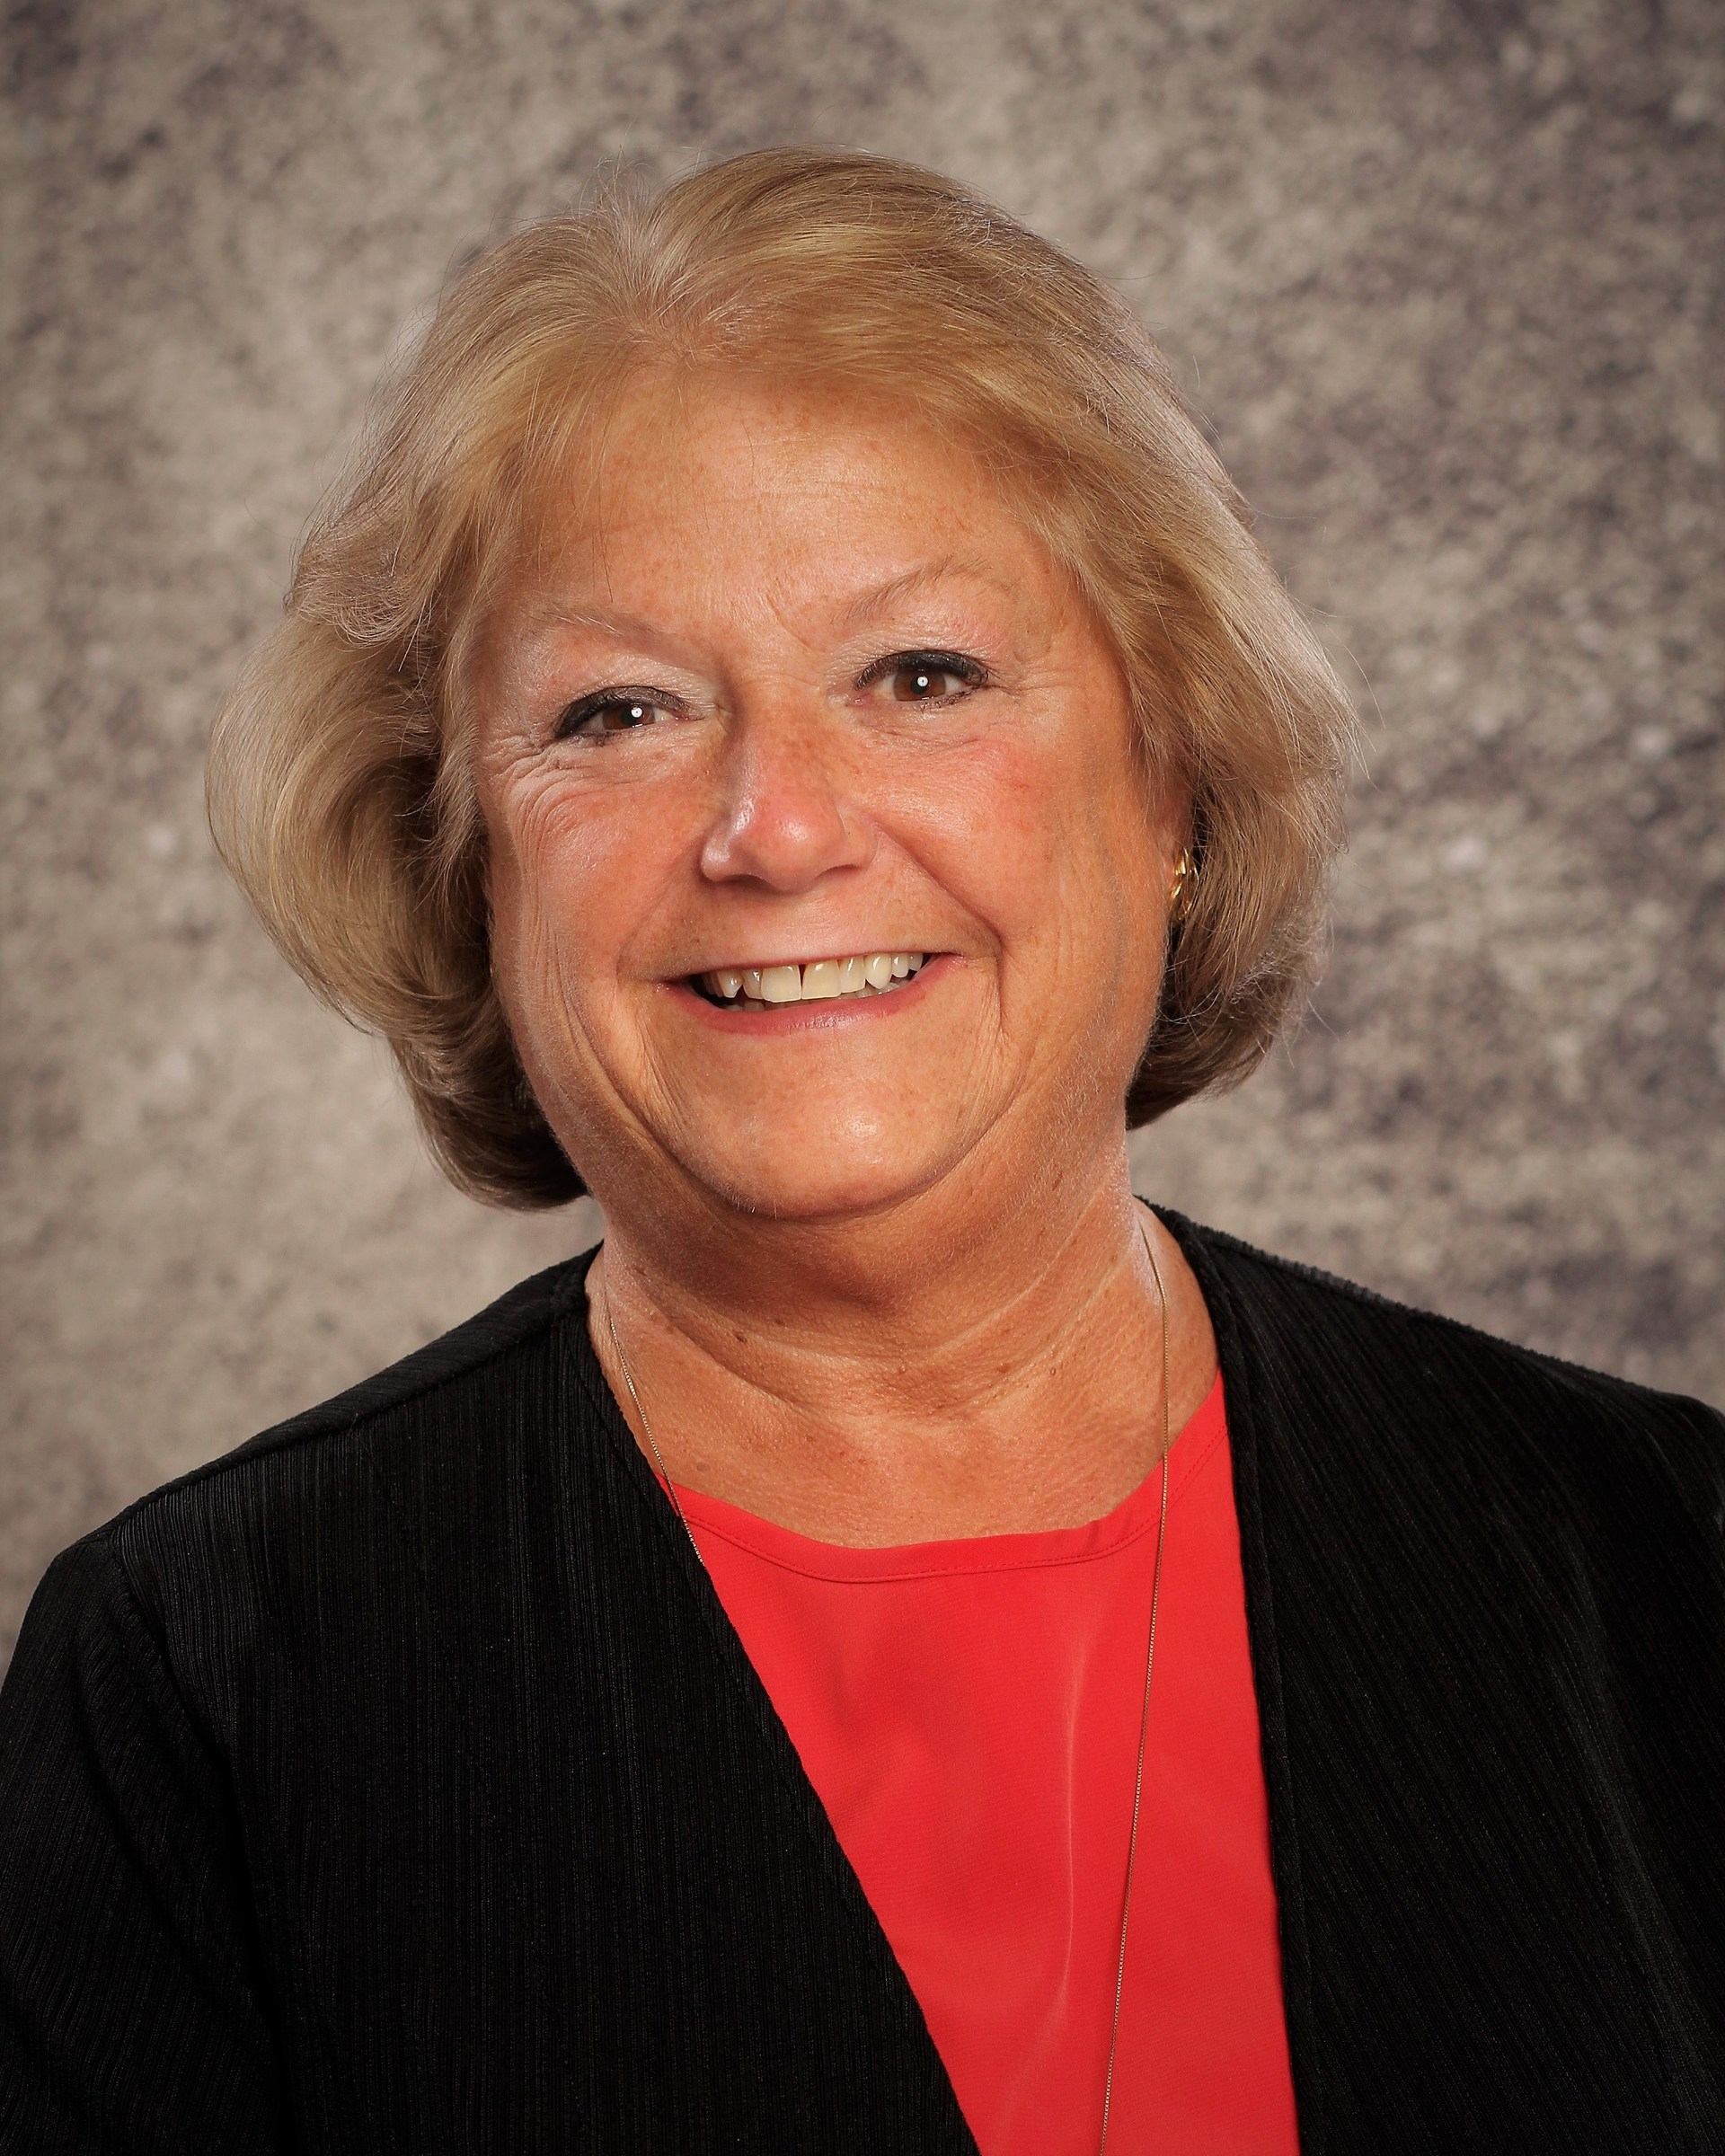 Cheri Borchardt, Director of Curriculum & Instruction